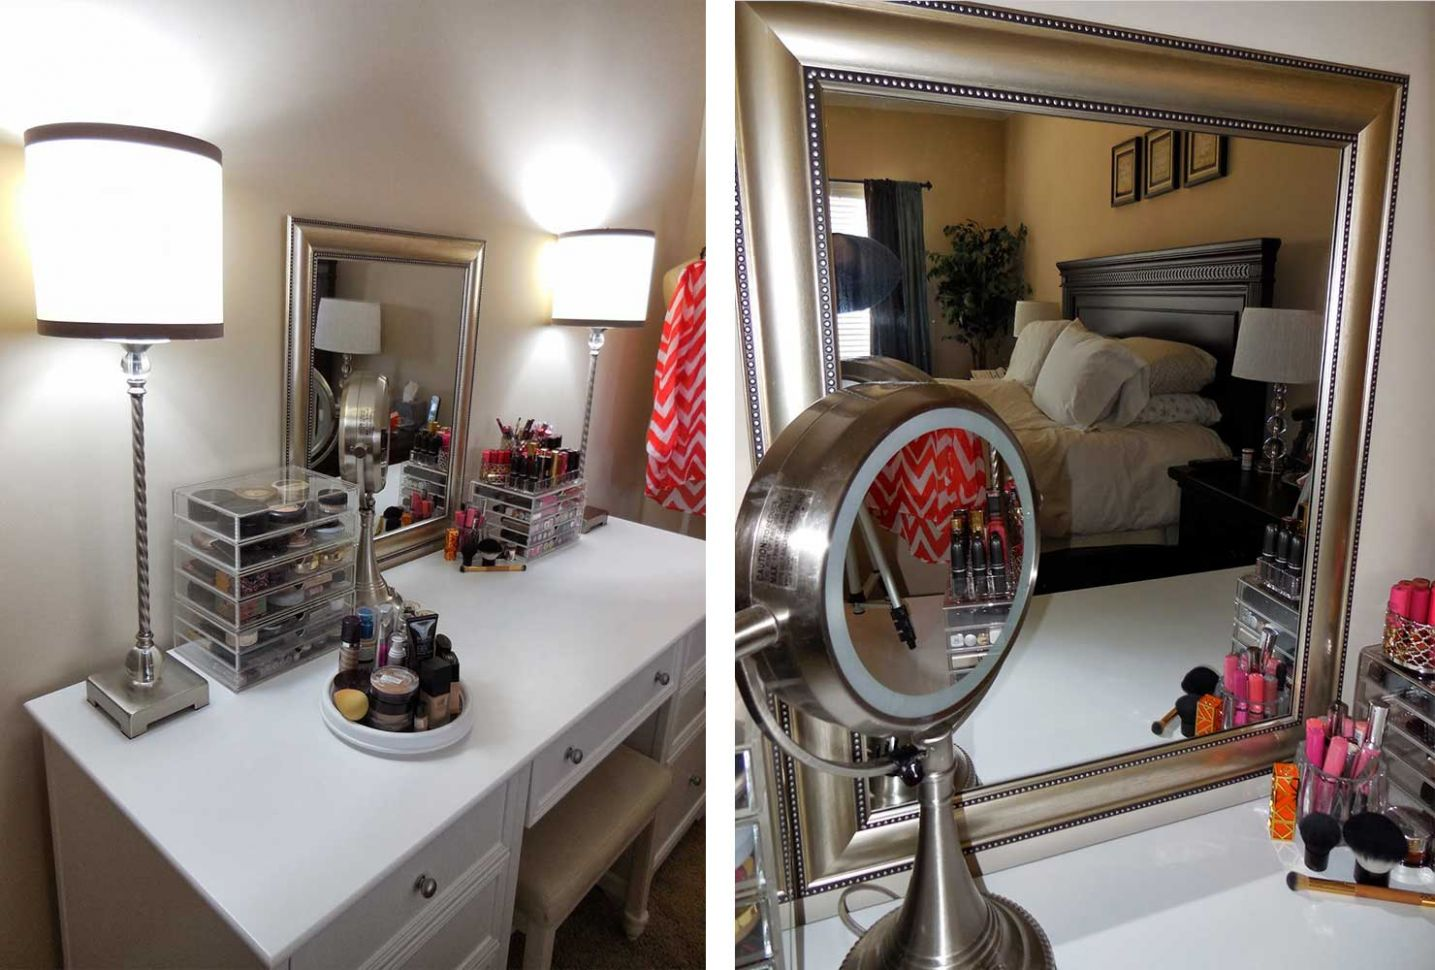 10 Makeup Room Ideas To Brighten Your Morning Routine | Shutterfly - makeup room must haves